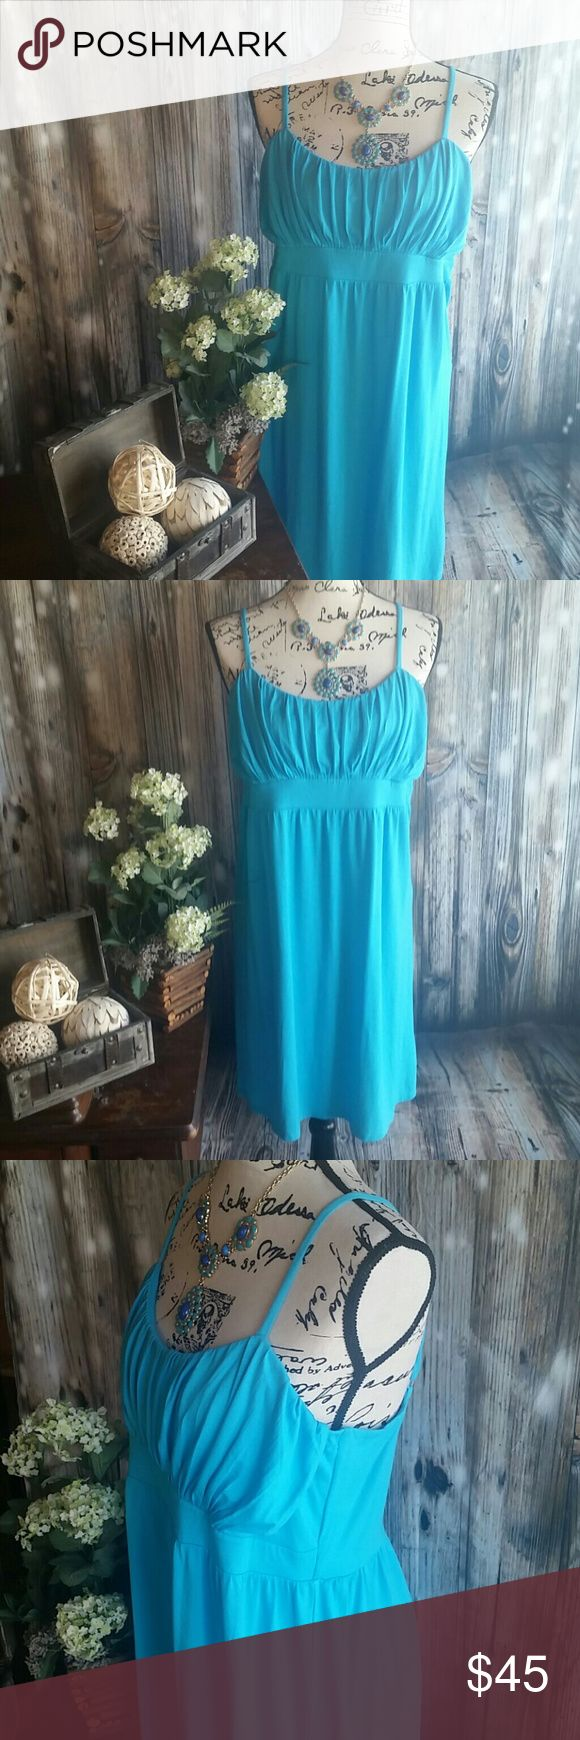 NWT INC sundress Fun and flirty aqua blue sundress, empire waistline, with ruching detail. Has lining in the top of dress, sewn in wide waistband.  Adjustable spaghetti straps, no damage or flaws. INC International Concepts Dresses